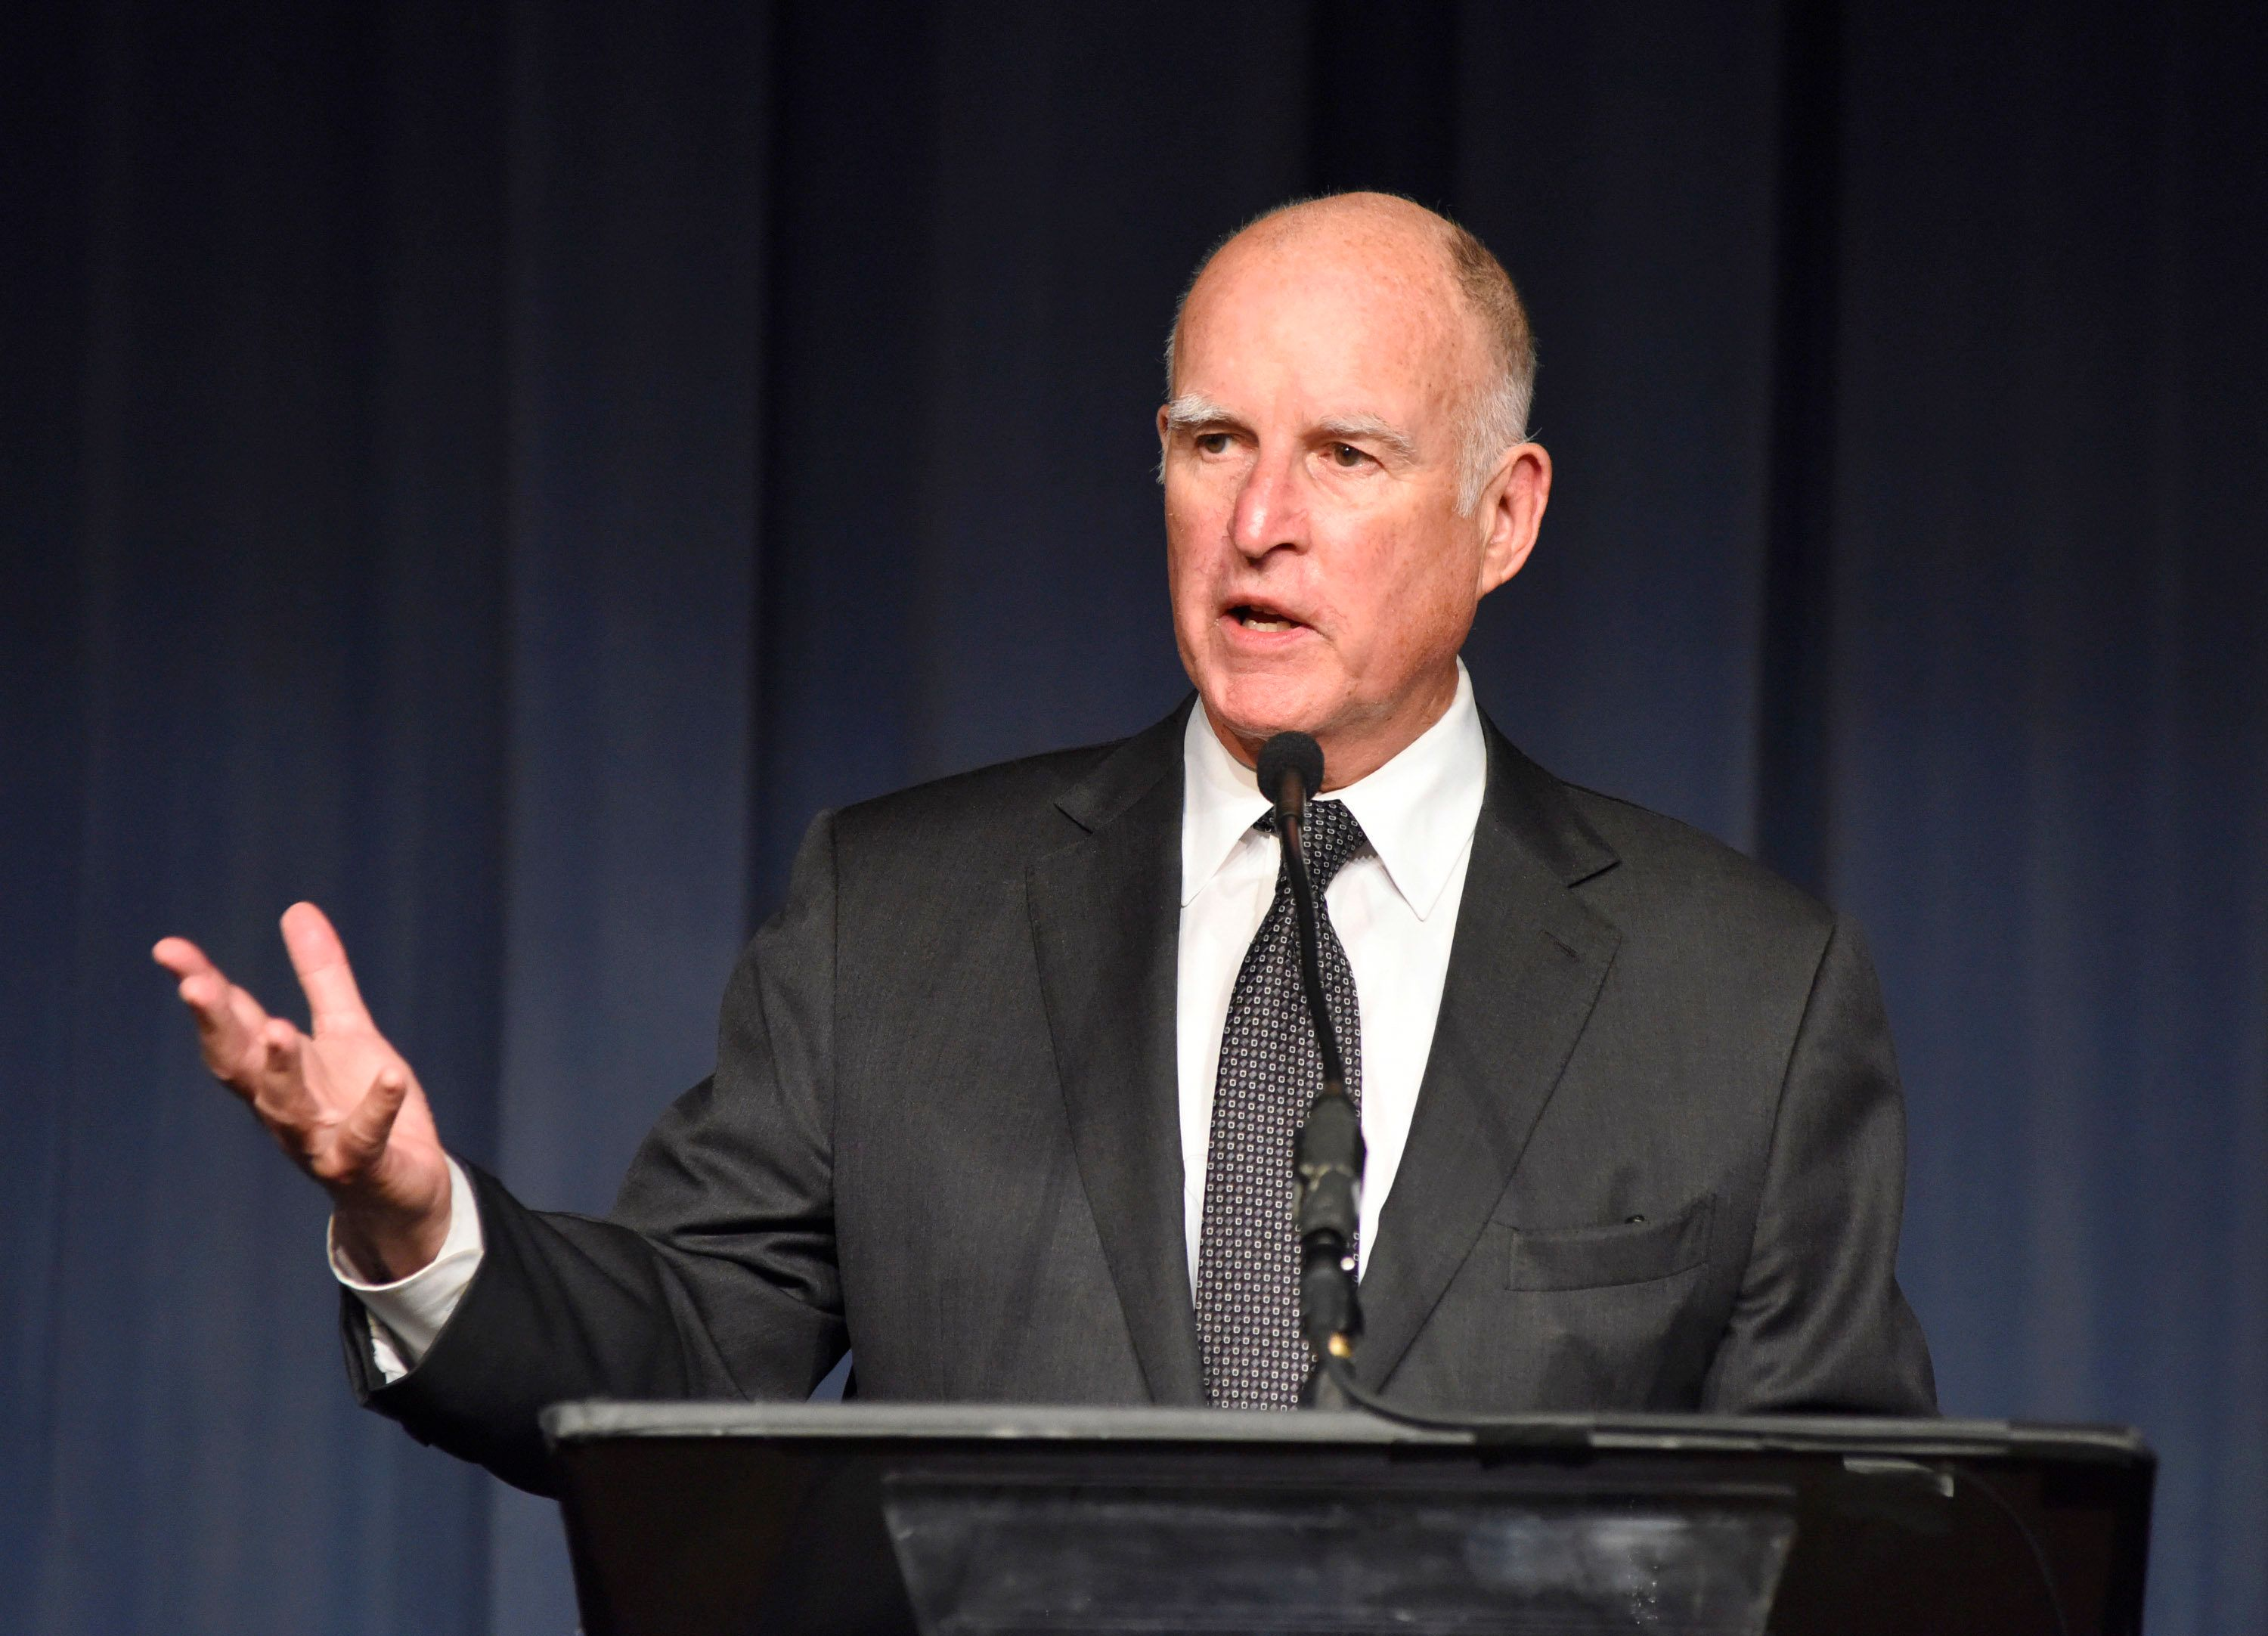 LOS ANGELES, CA - MAY 03:  (EXCLUSIVE COVERAGE) Governer Jerry Brown speaks at the Berggruen Institute: 5 Year Anniversary Celebration at The Beverly Wilshire on May 3, 2016 in Los Angeles, California.  (Photo by Vivien Killilea/Getty Images for Berggruen Institute)